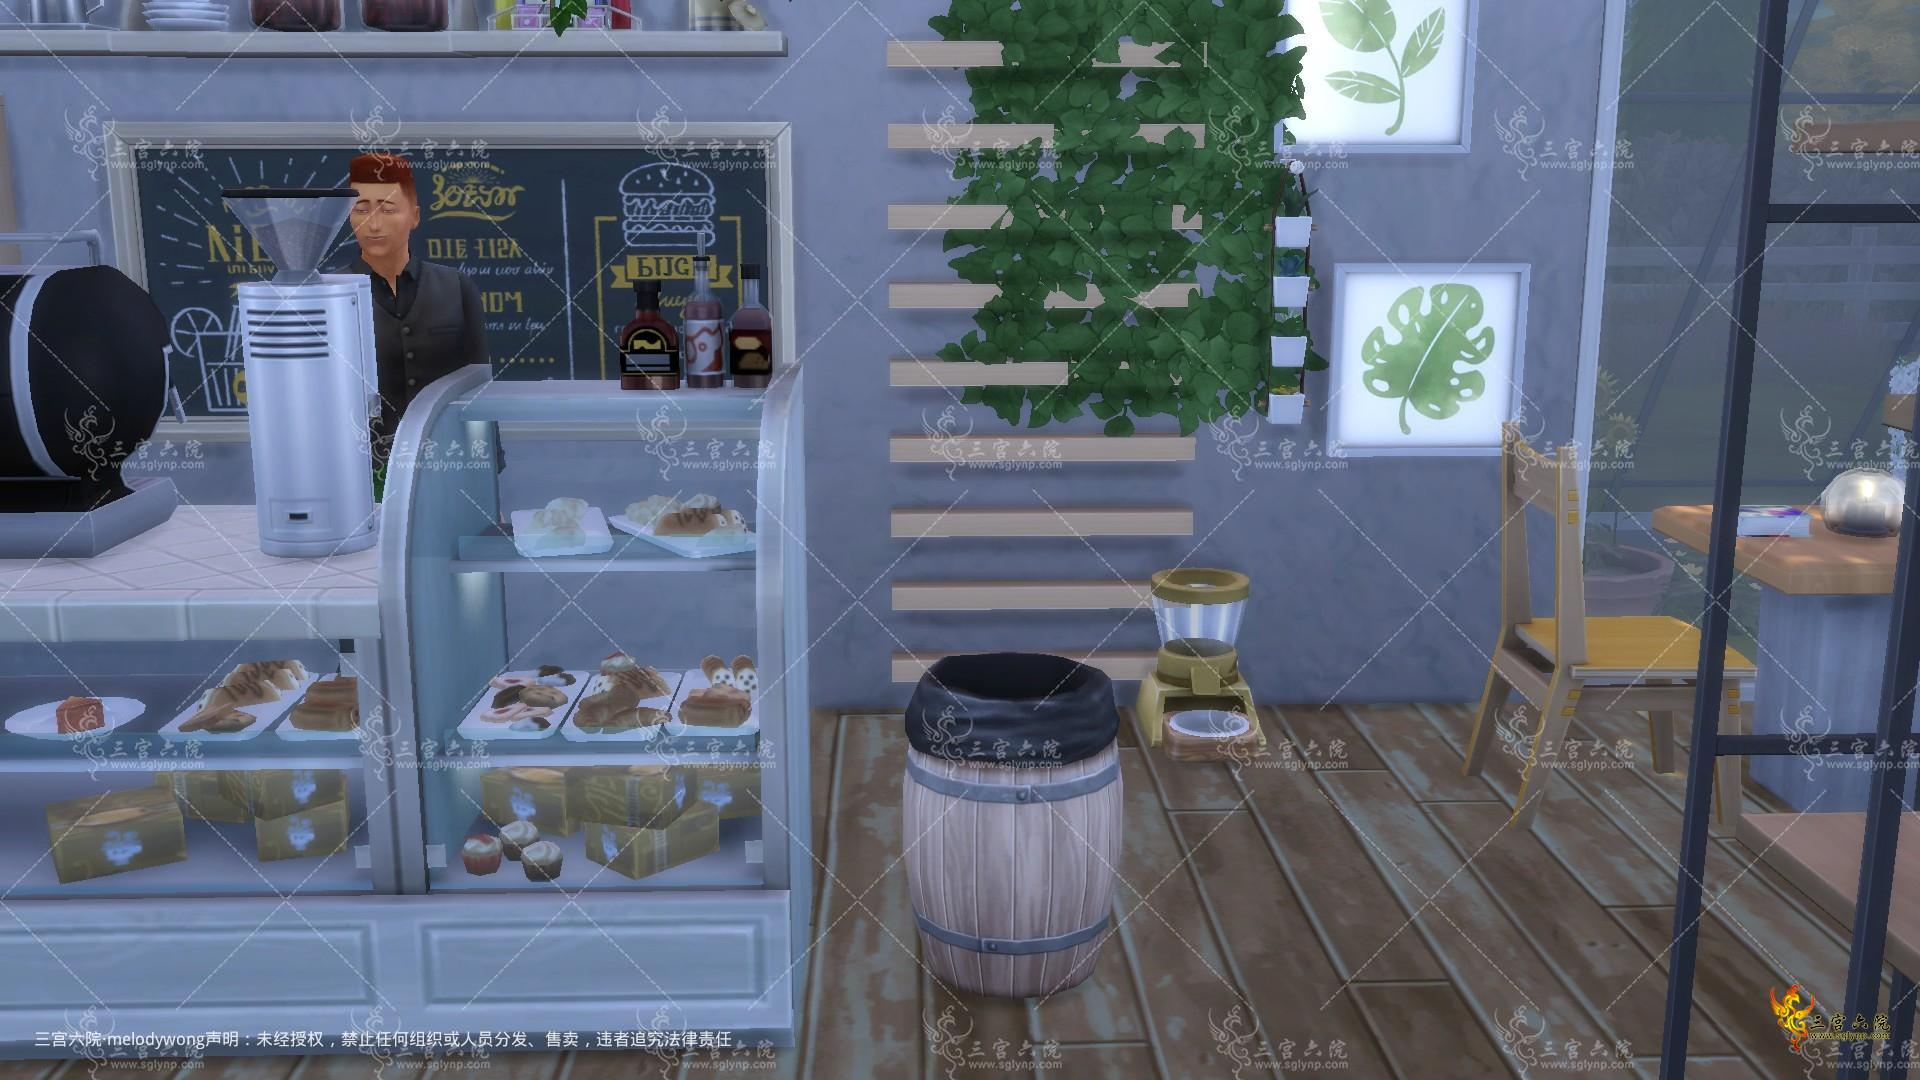 The Sims 4 2021_8_26 下午 03_16_15.png